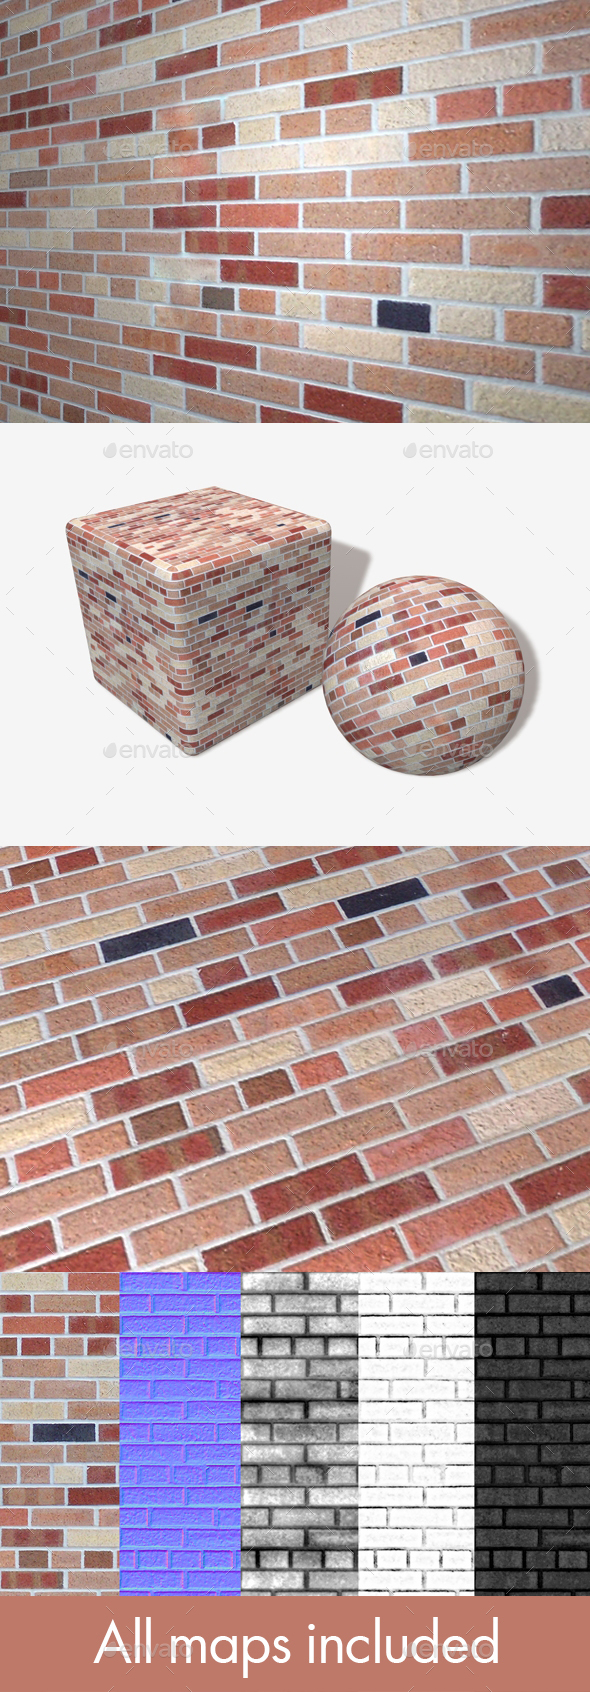 Modern Brick Wall Seamless Texture - 3DOcean Item for Sale